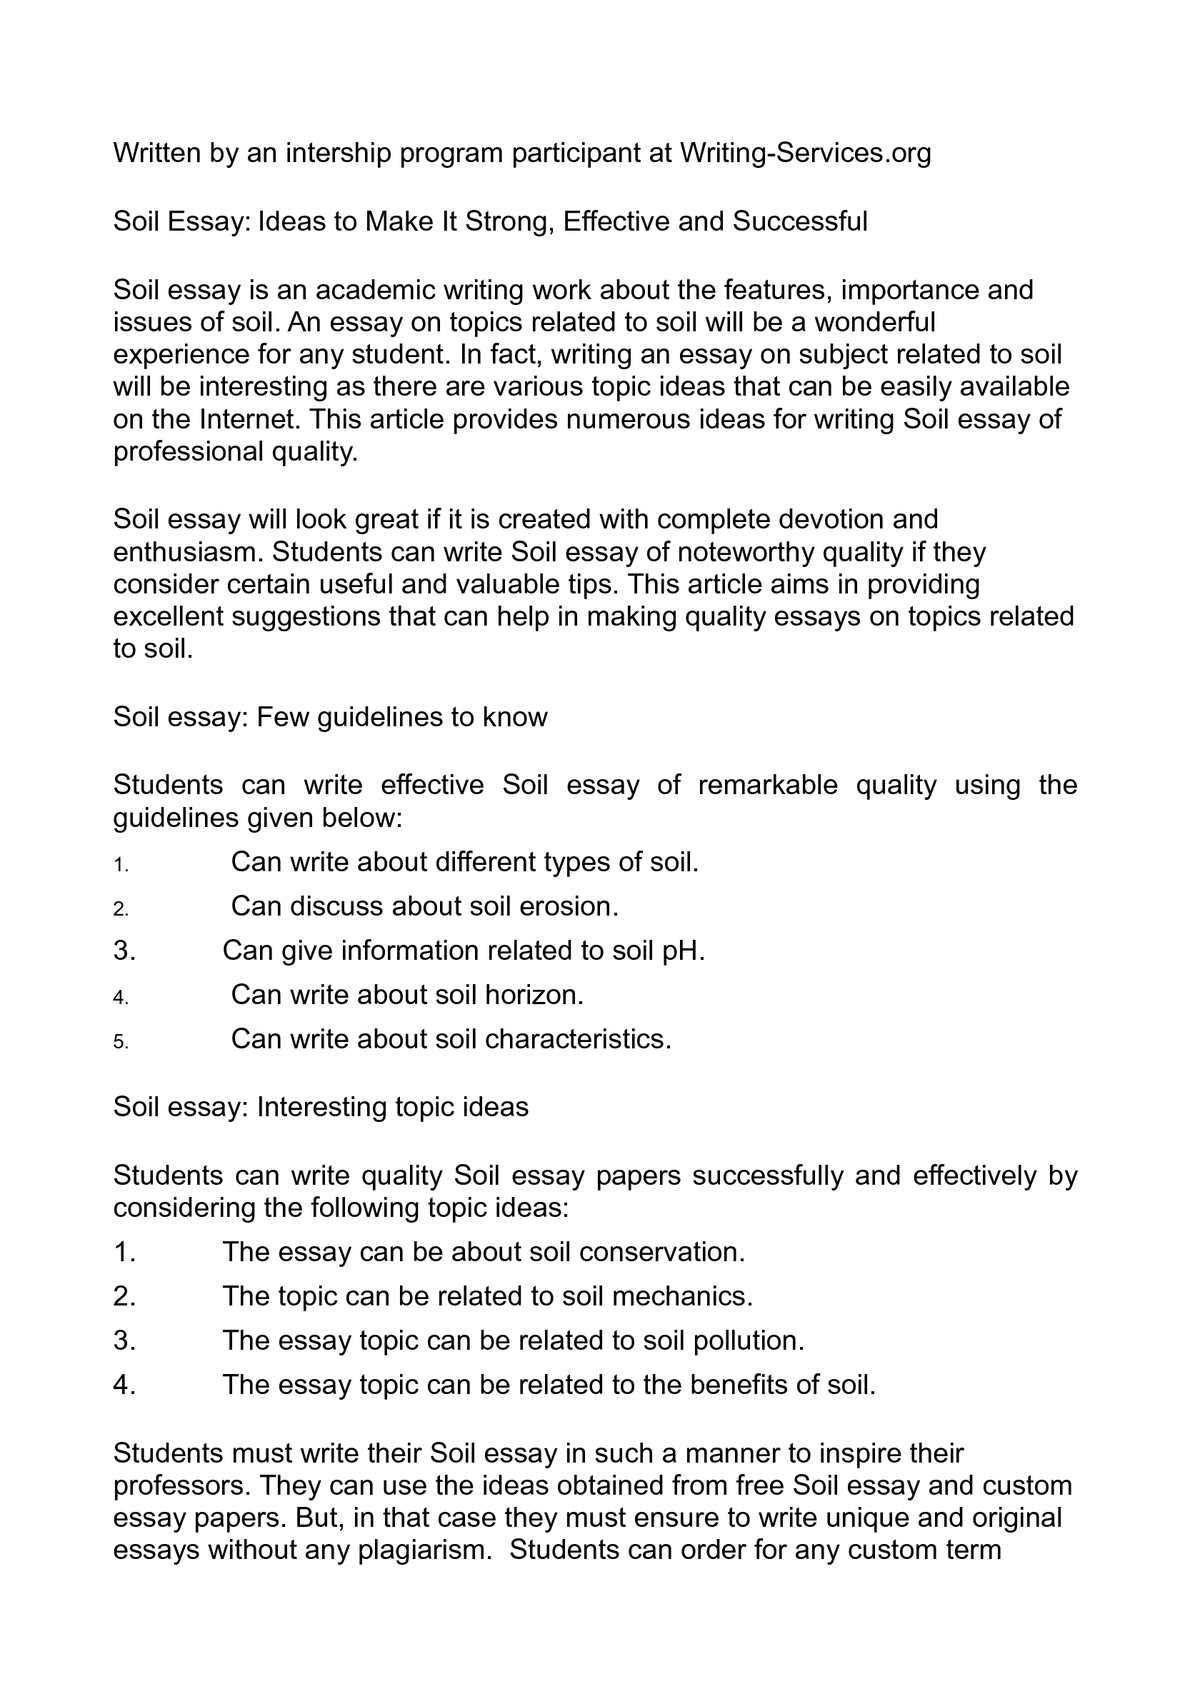 Essays With Thesis Statements  Essay About Healthy Food also Best English Essays Calamo  Soil Essay Ideas To Make It Strong Effective And Successful Example Essay English